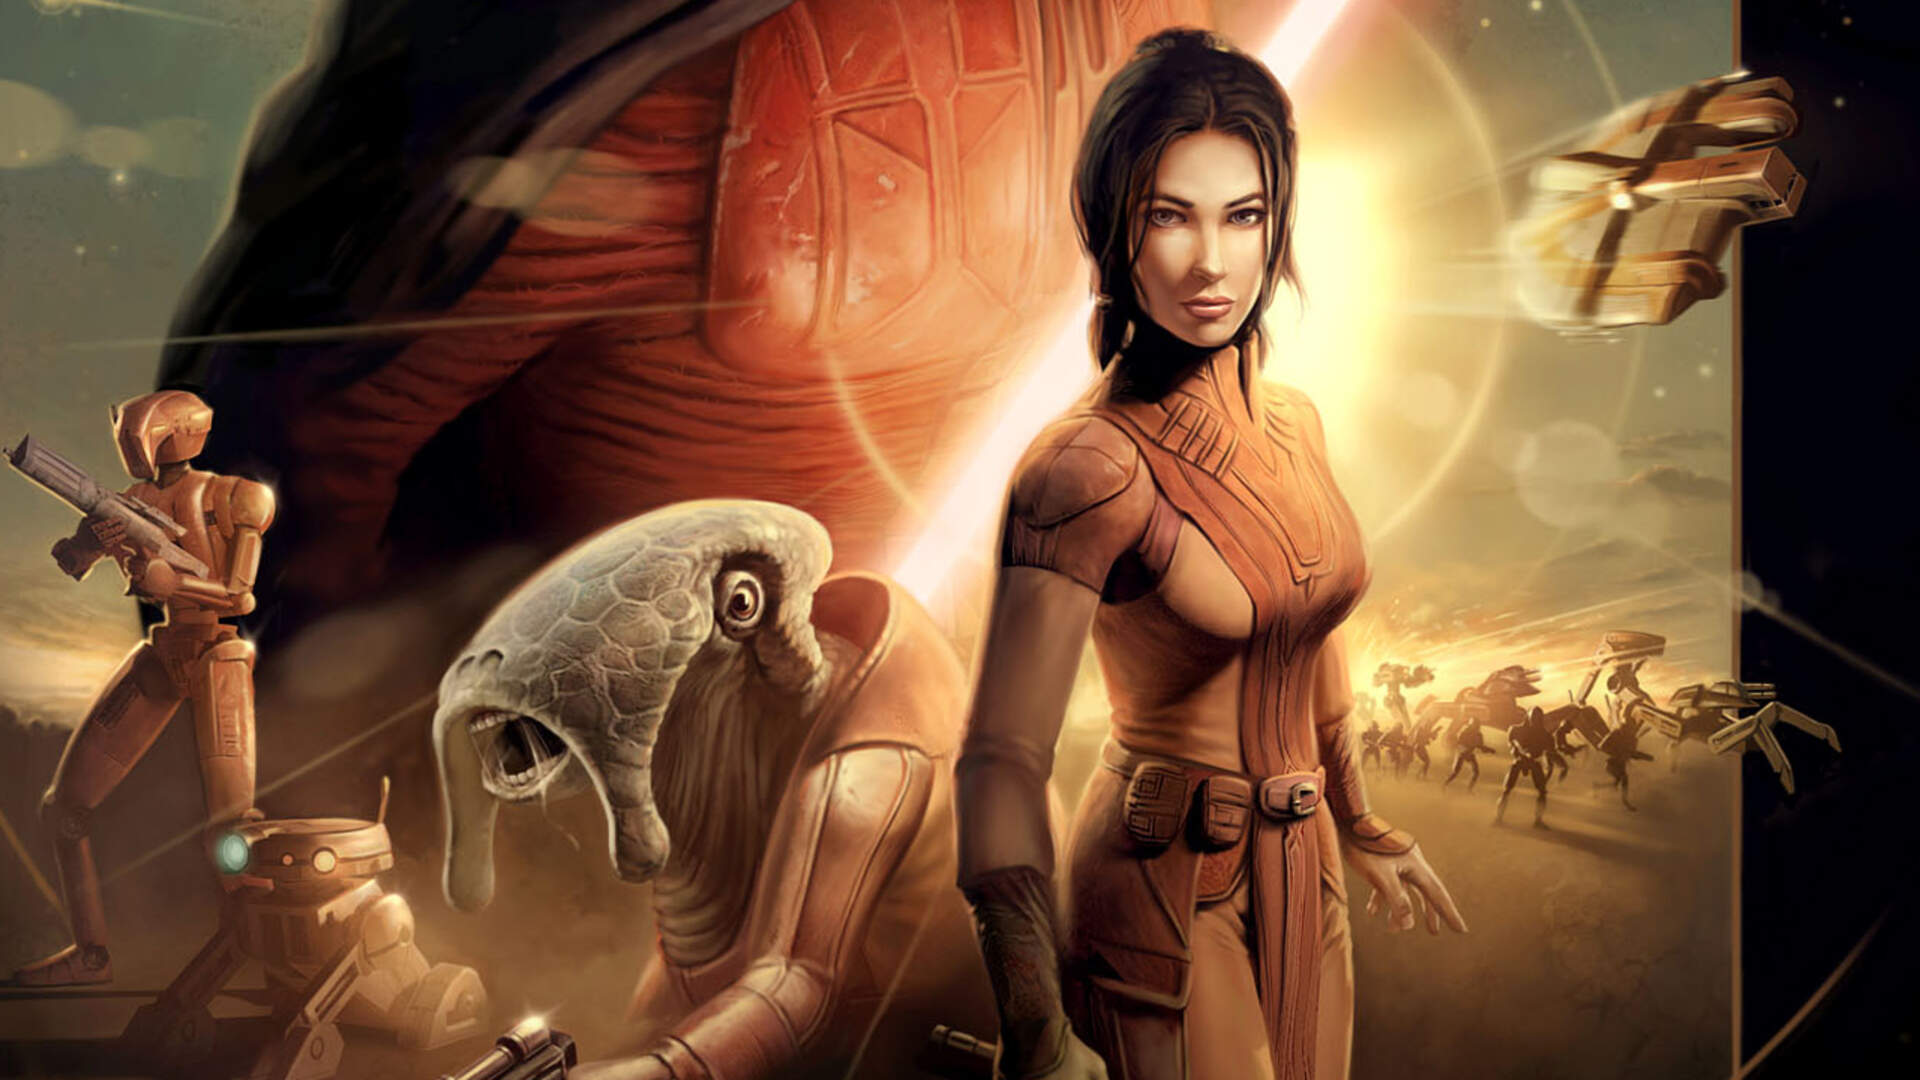 Report: Star Wars: Knights of the Old Republic Film Adaptation Script Nearly Finished